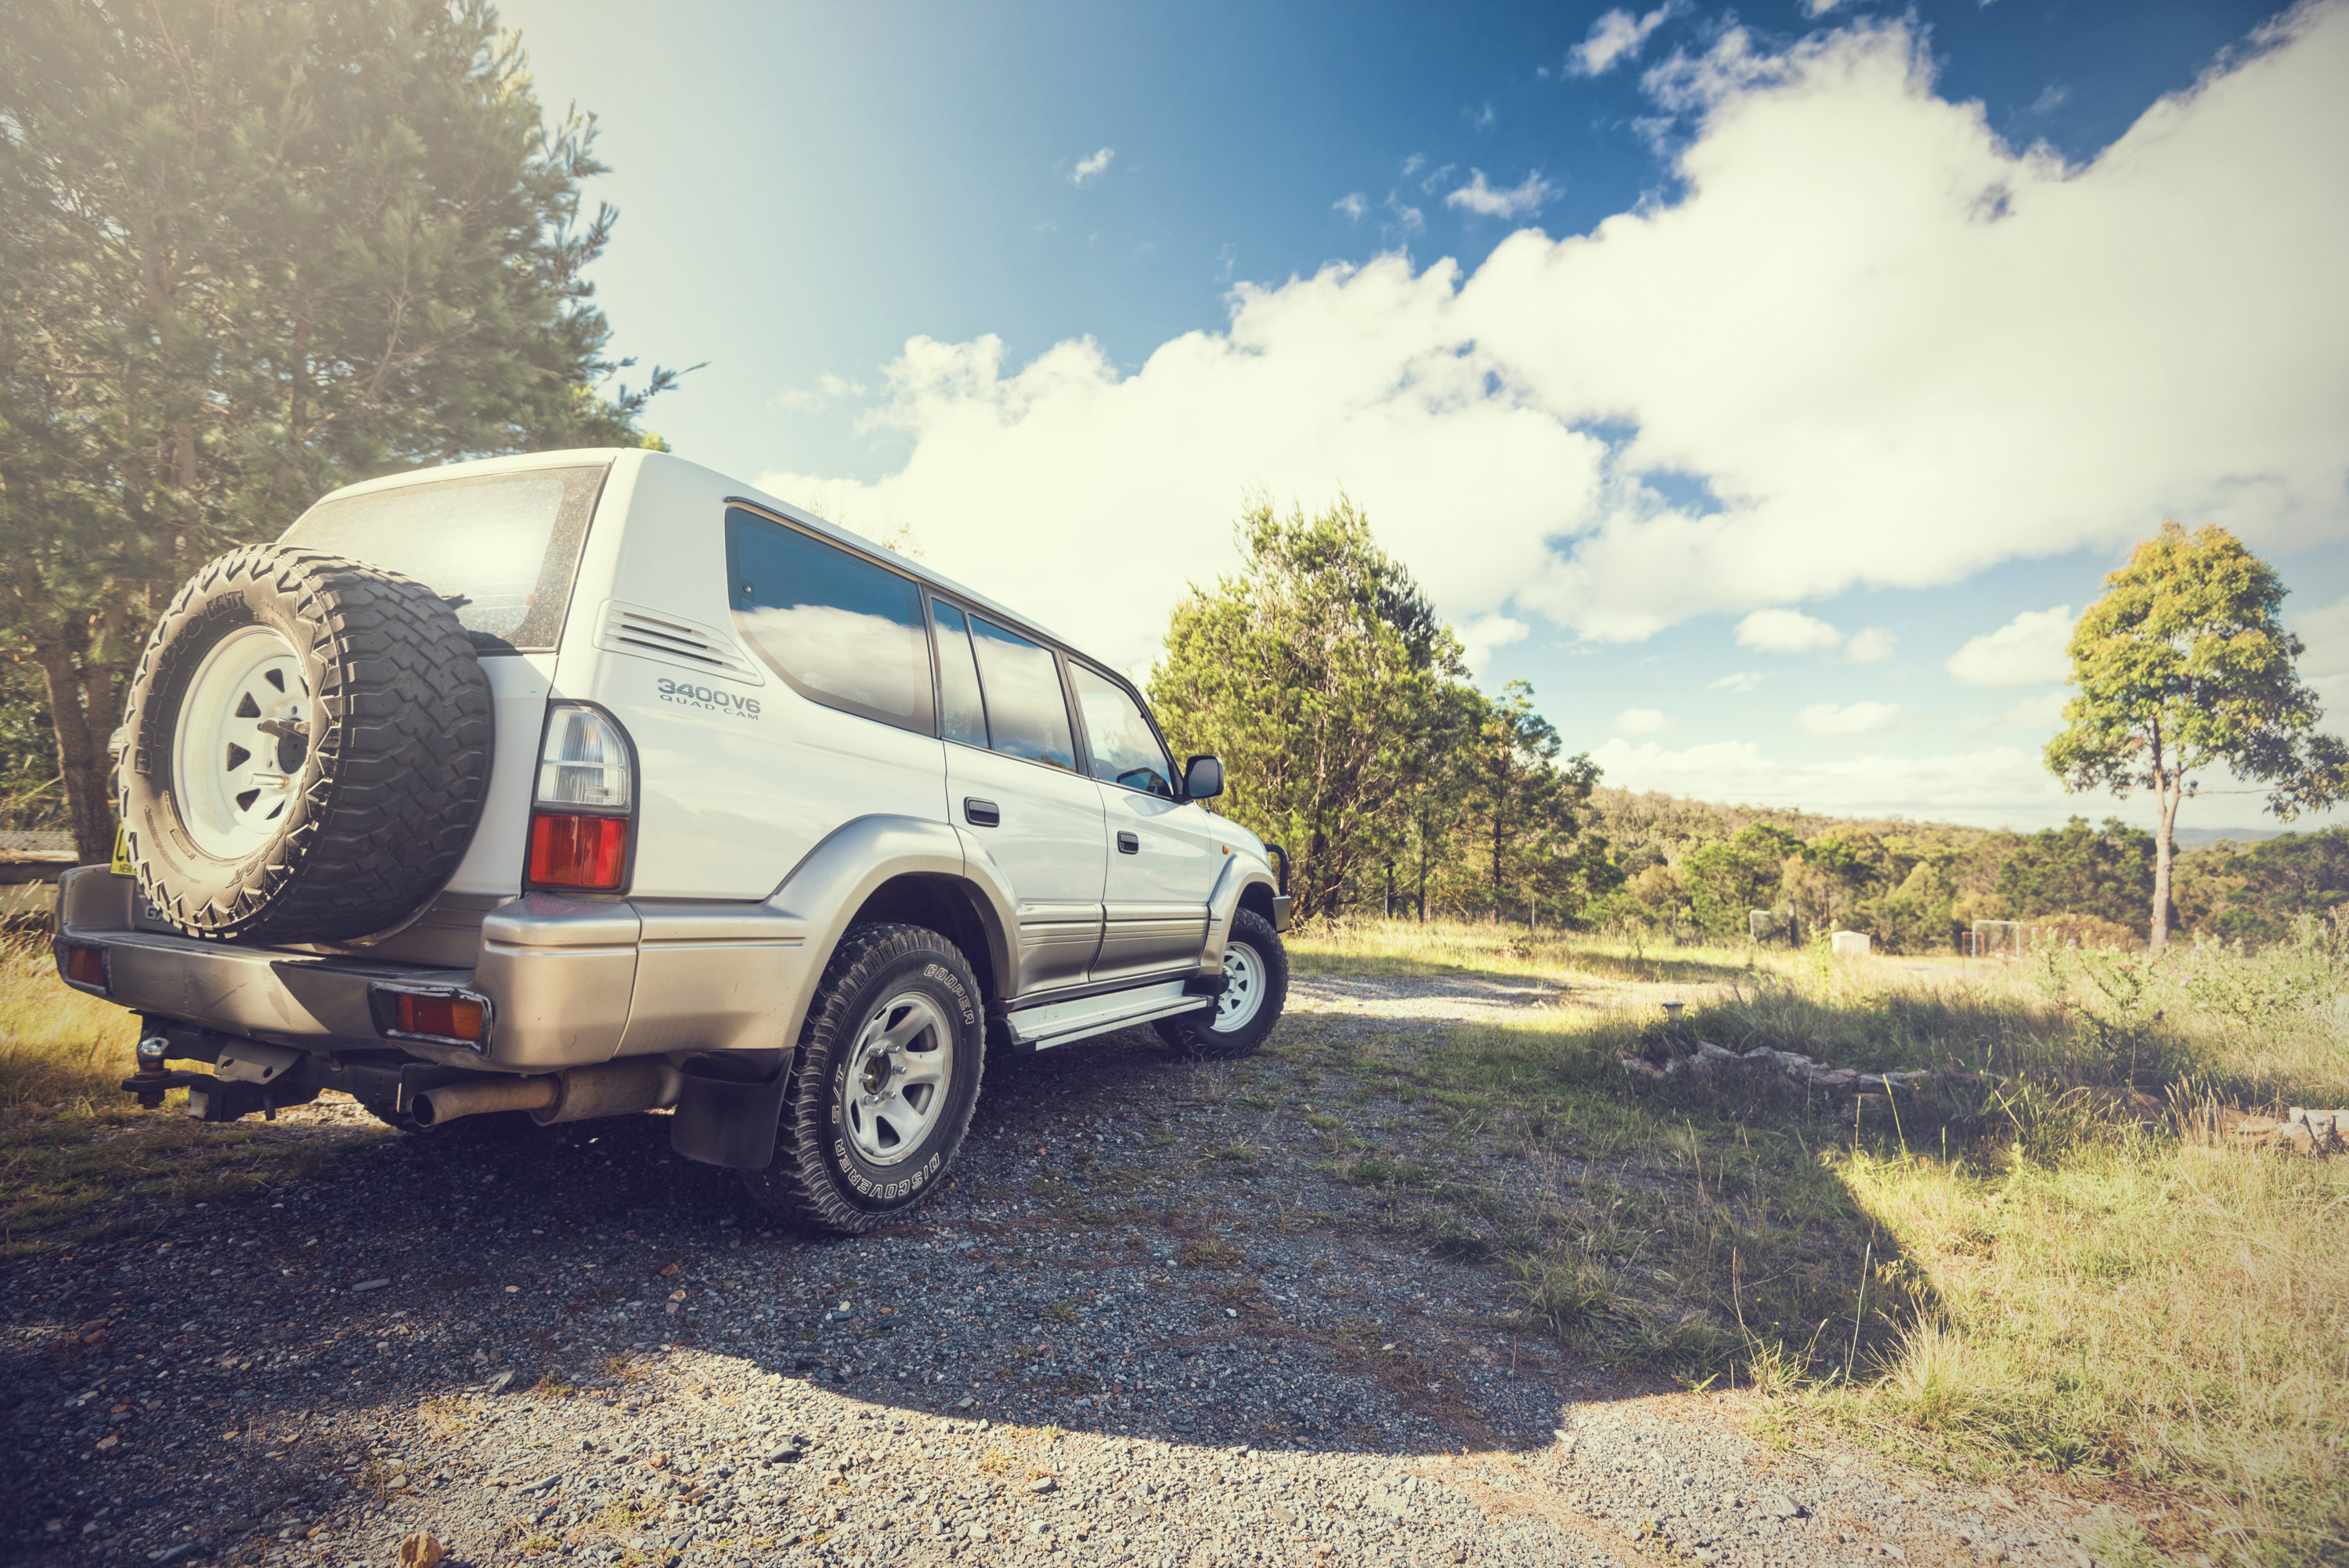 after the real australia adventure adrenaline the 4wd is the only way to see the real outback… our 4wds are excellent vehicles for couples or friends